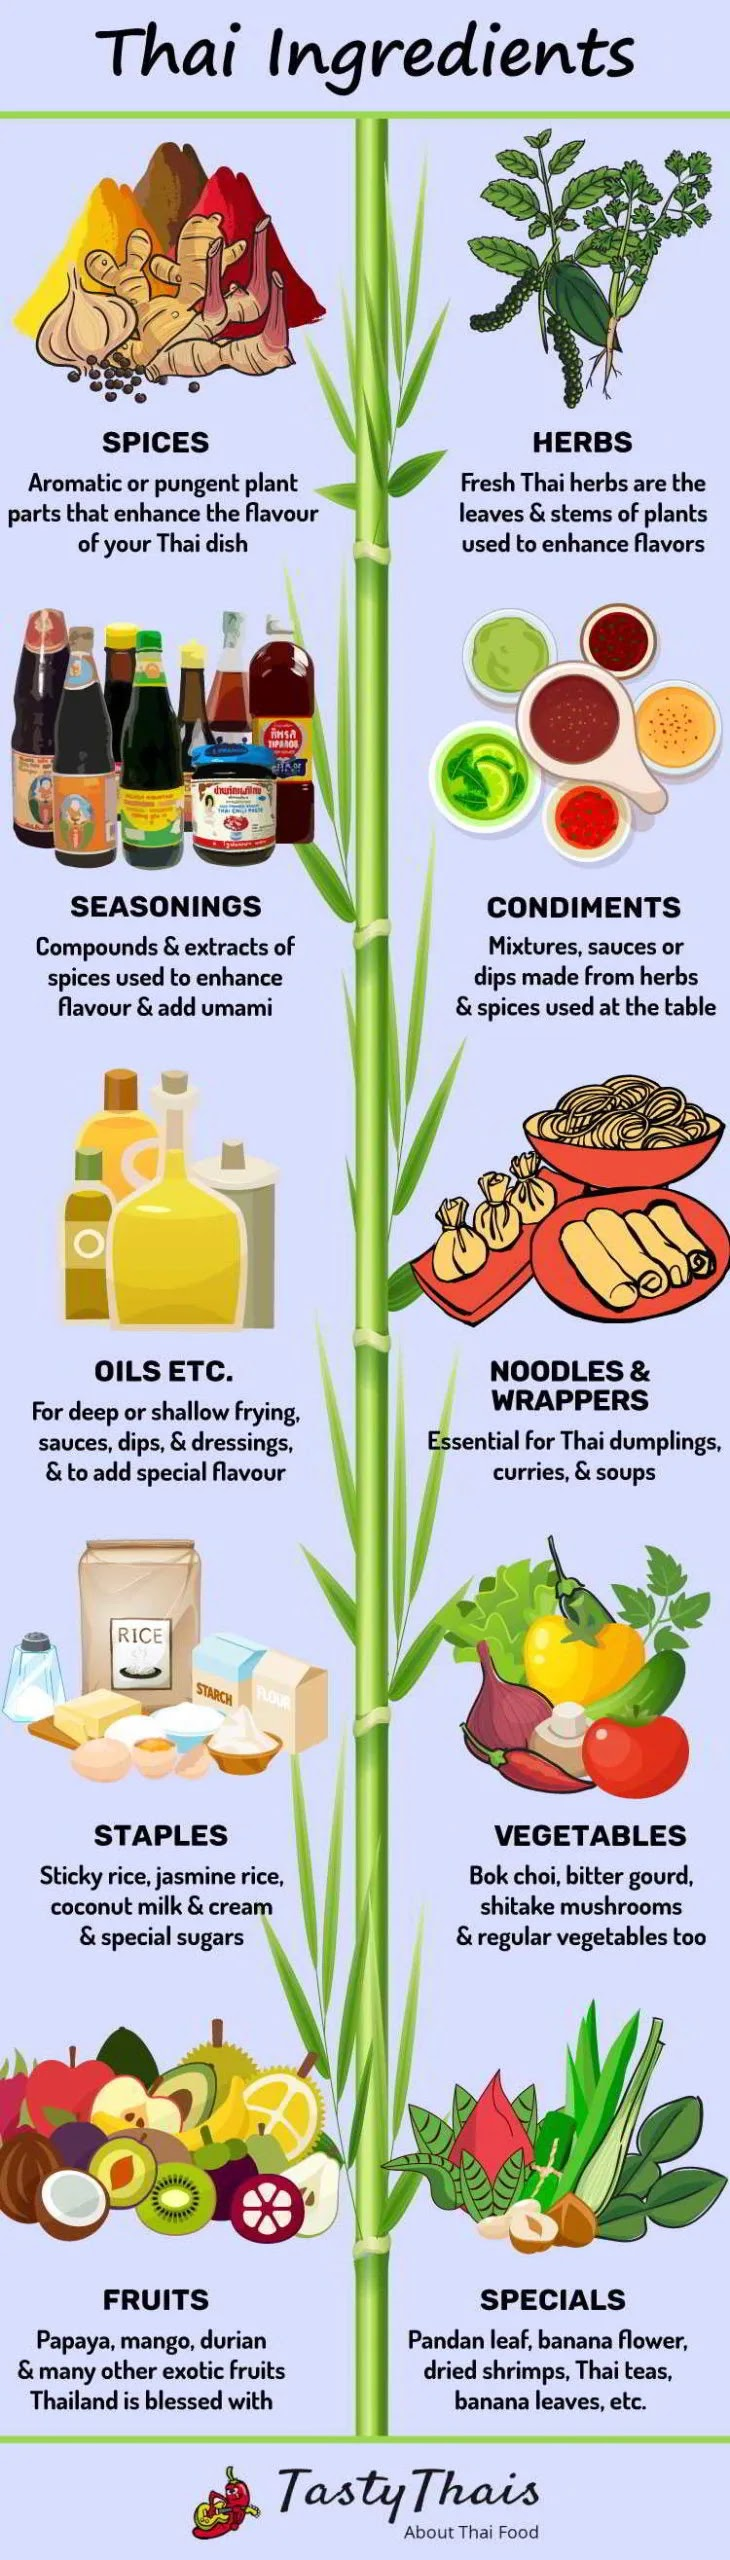 Thai Food Ingredients – Essentials You Need to Keep & Source to Cook Thai Food #infographic